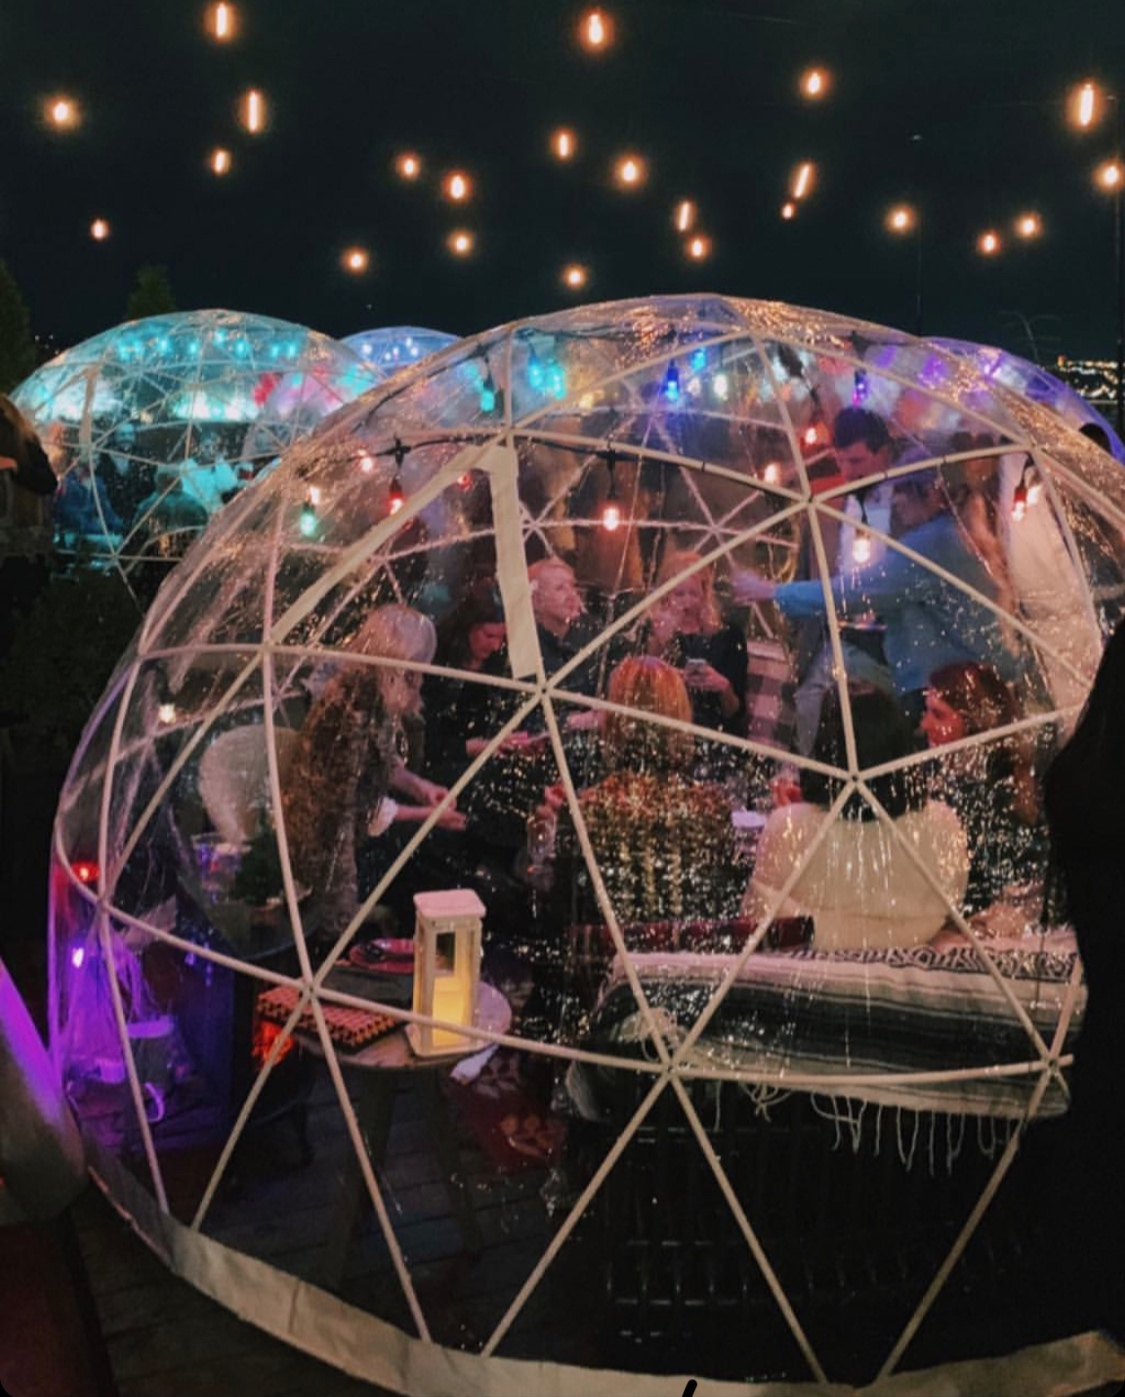 Igloos on the Bobby Hotel Rooftop. Click photo for link to purchase a ready made igloo kit.